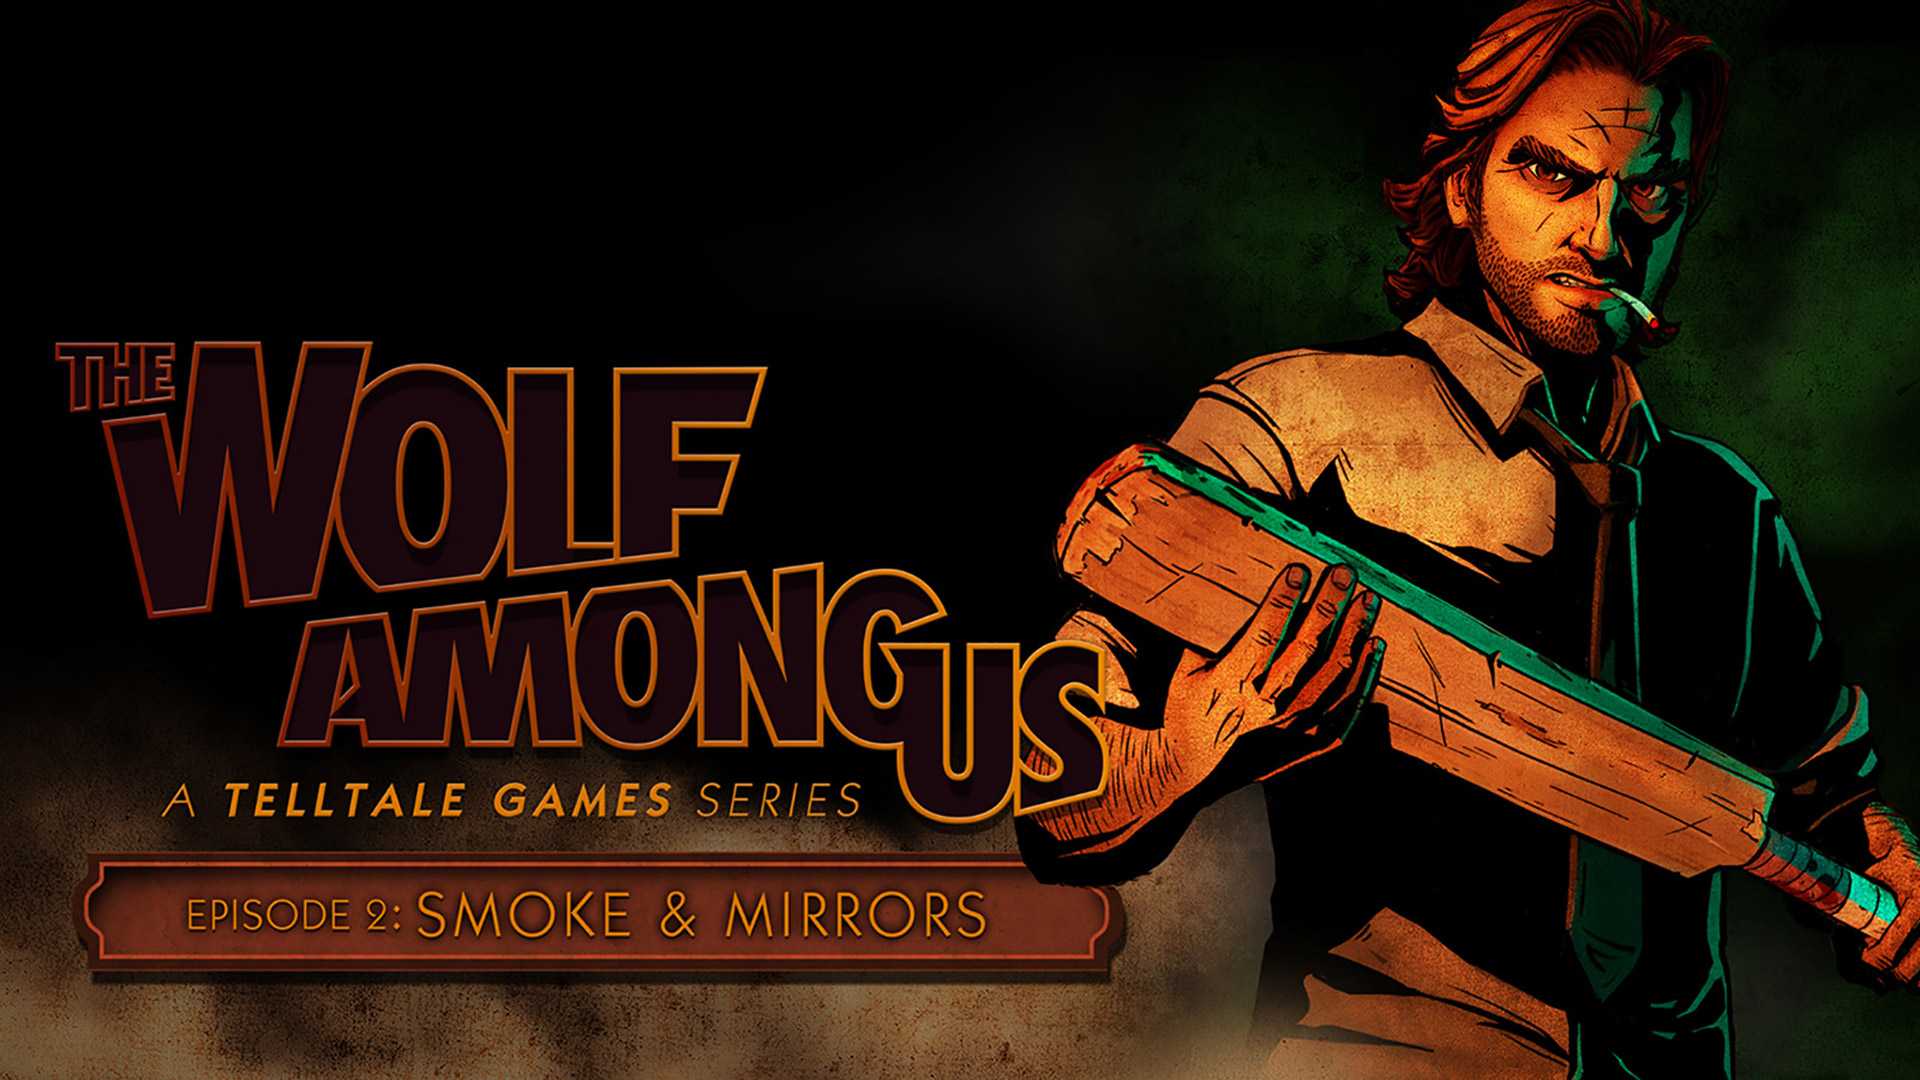 wallpapers of The Wolf Among Us You are downloading The Wolf Among Us 1920x1080